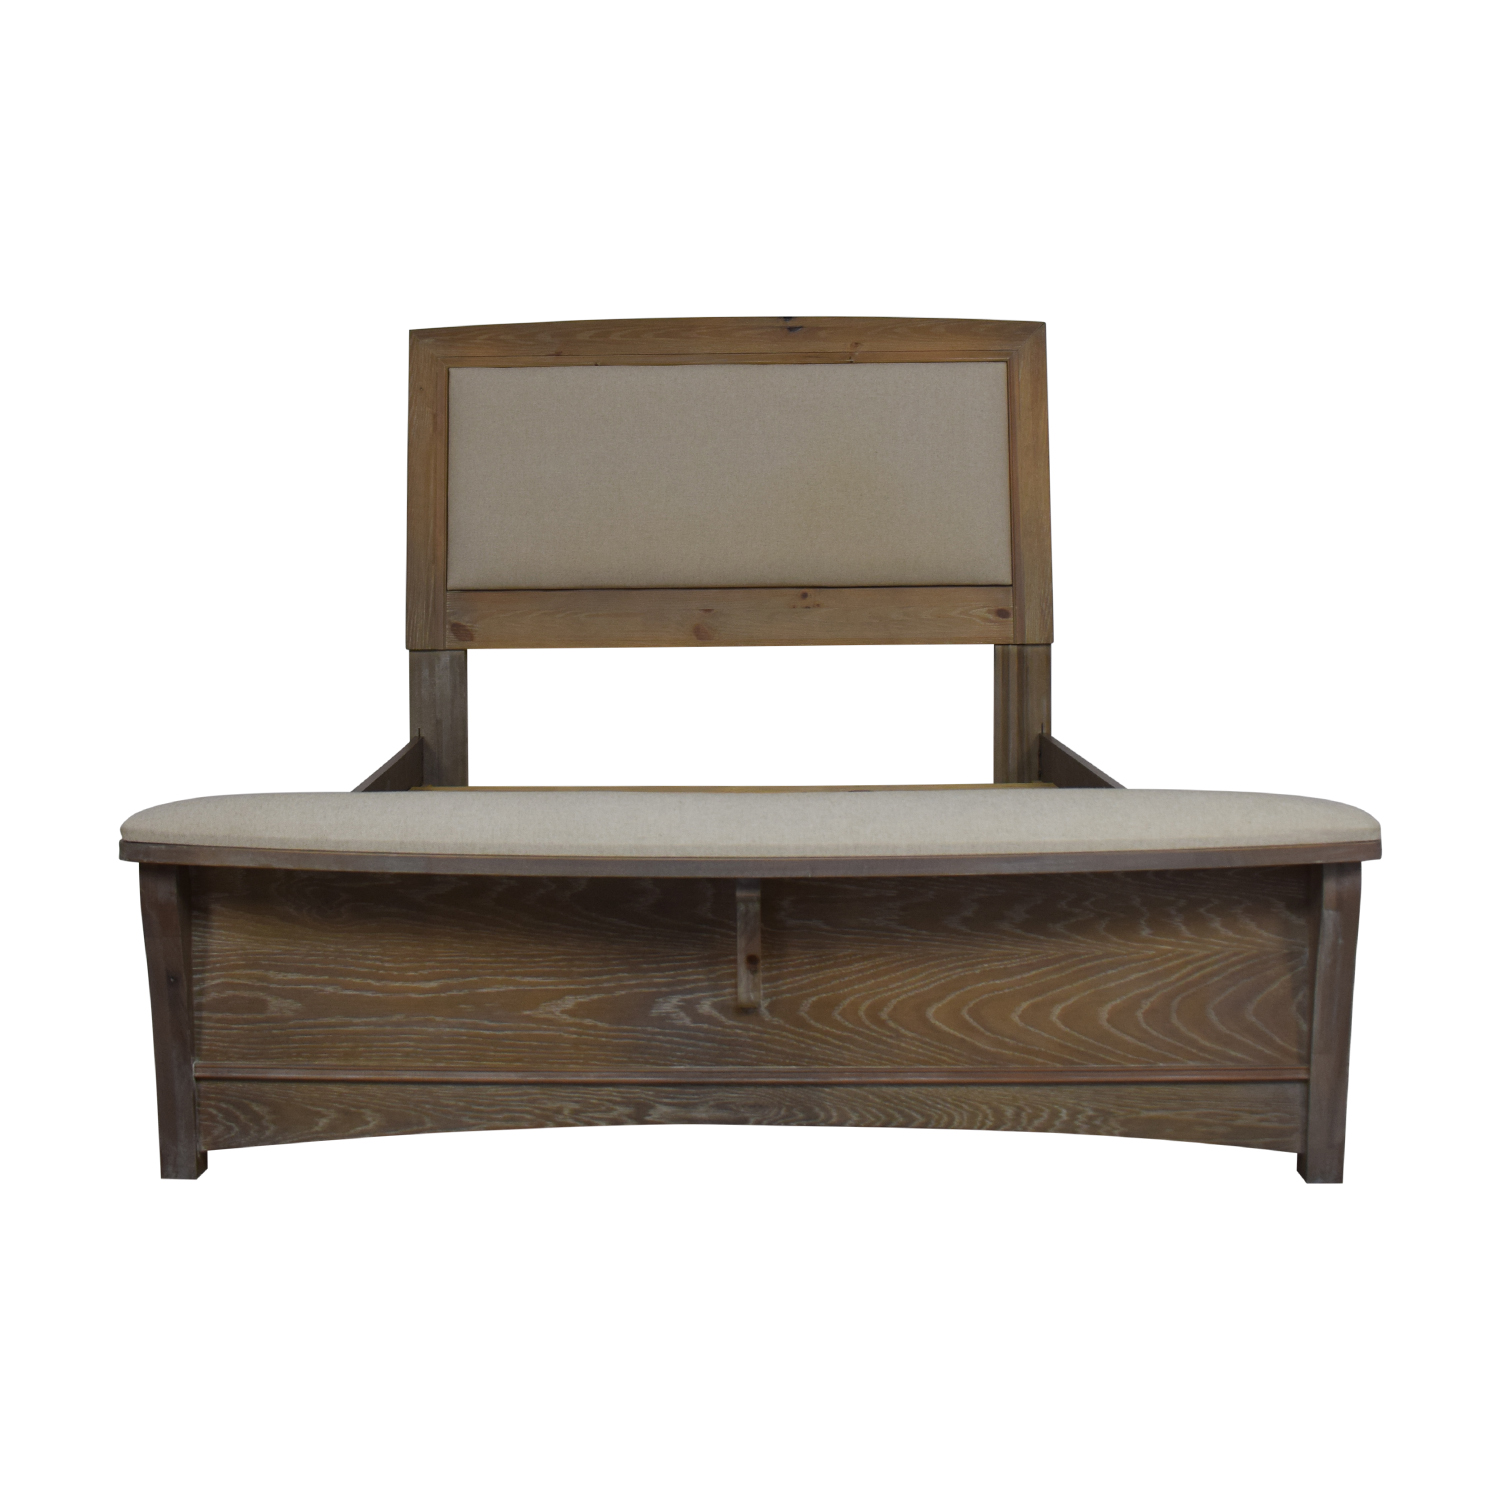 Vaughan-Bassett Vaughan-Bassett Transitions Queen Upholstered Bed with Bench dimensions